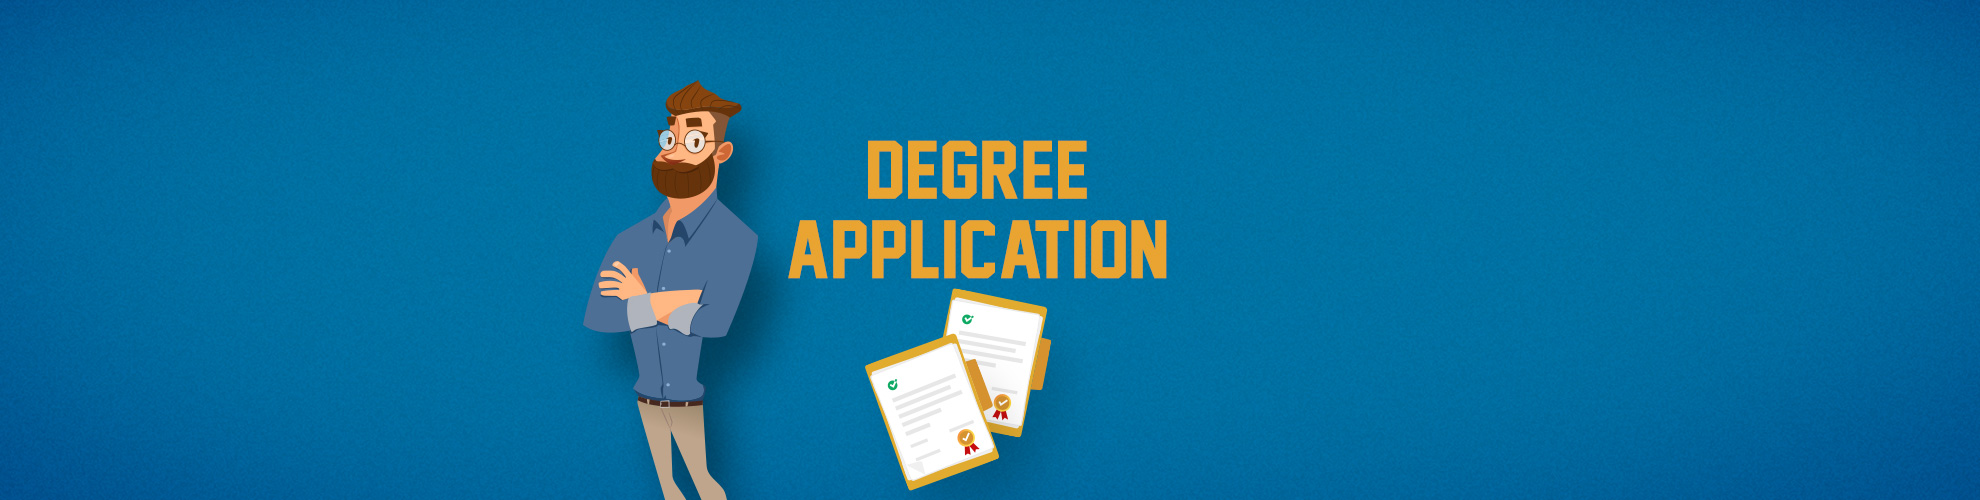 Degree Application